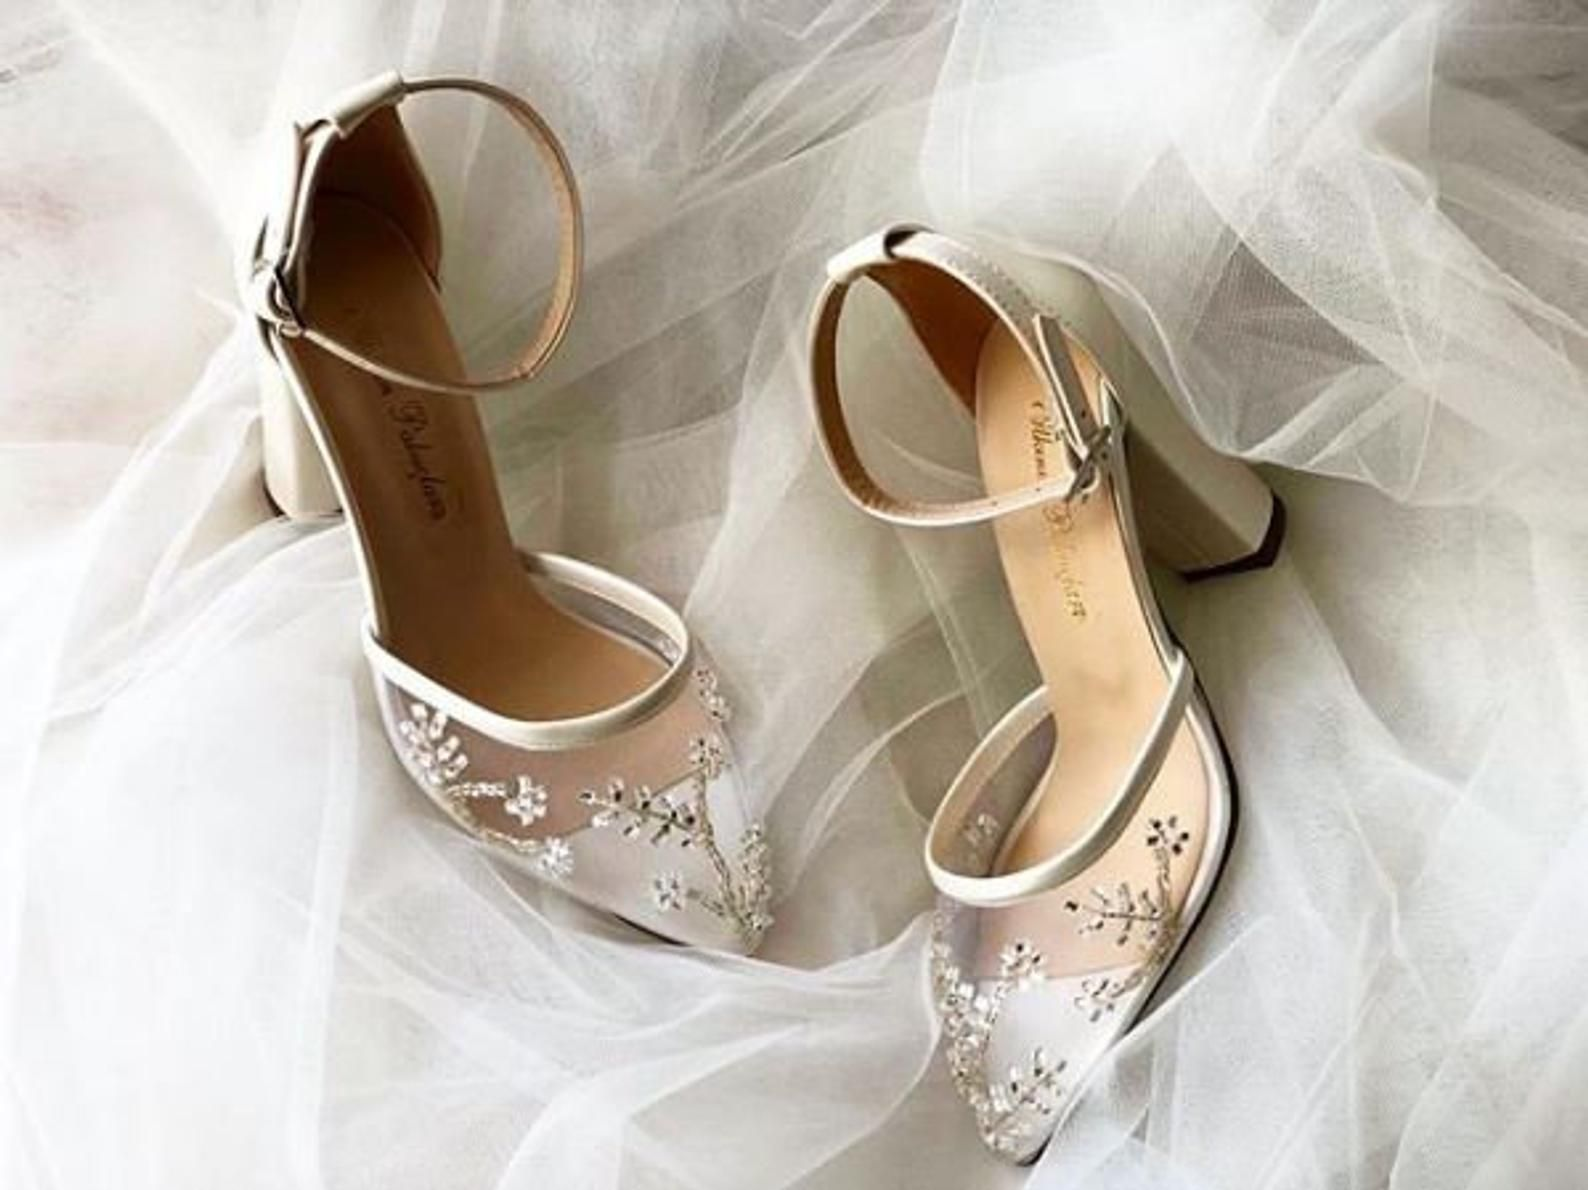 Tulle With Stone Embellishment Wedding Shoes Bridal Shoes Etsy In 2021 Wedding Shoes Lace Wedding Shoes Heels Bride Heels